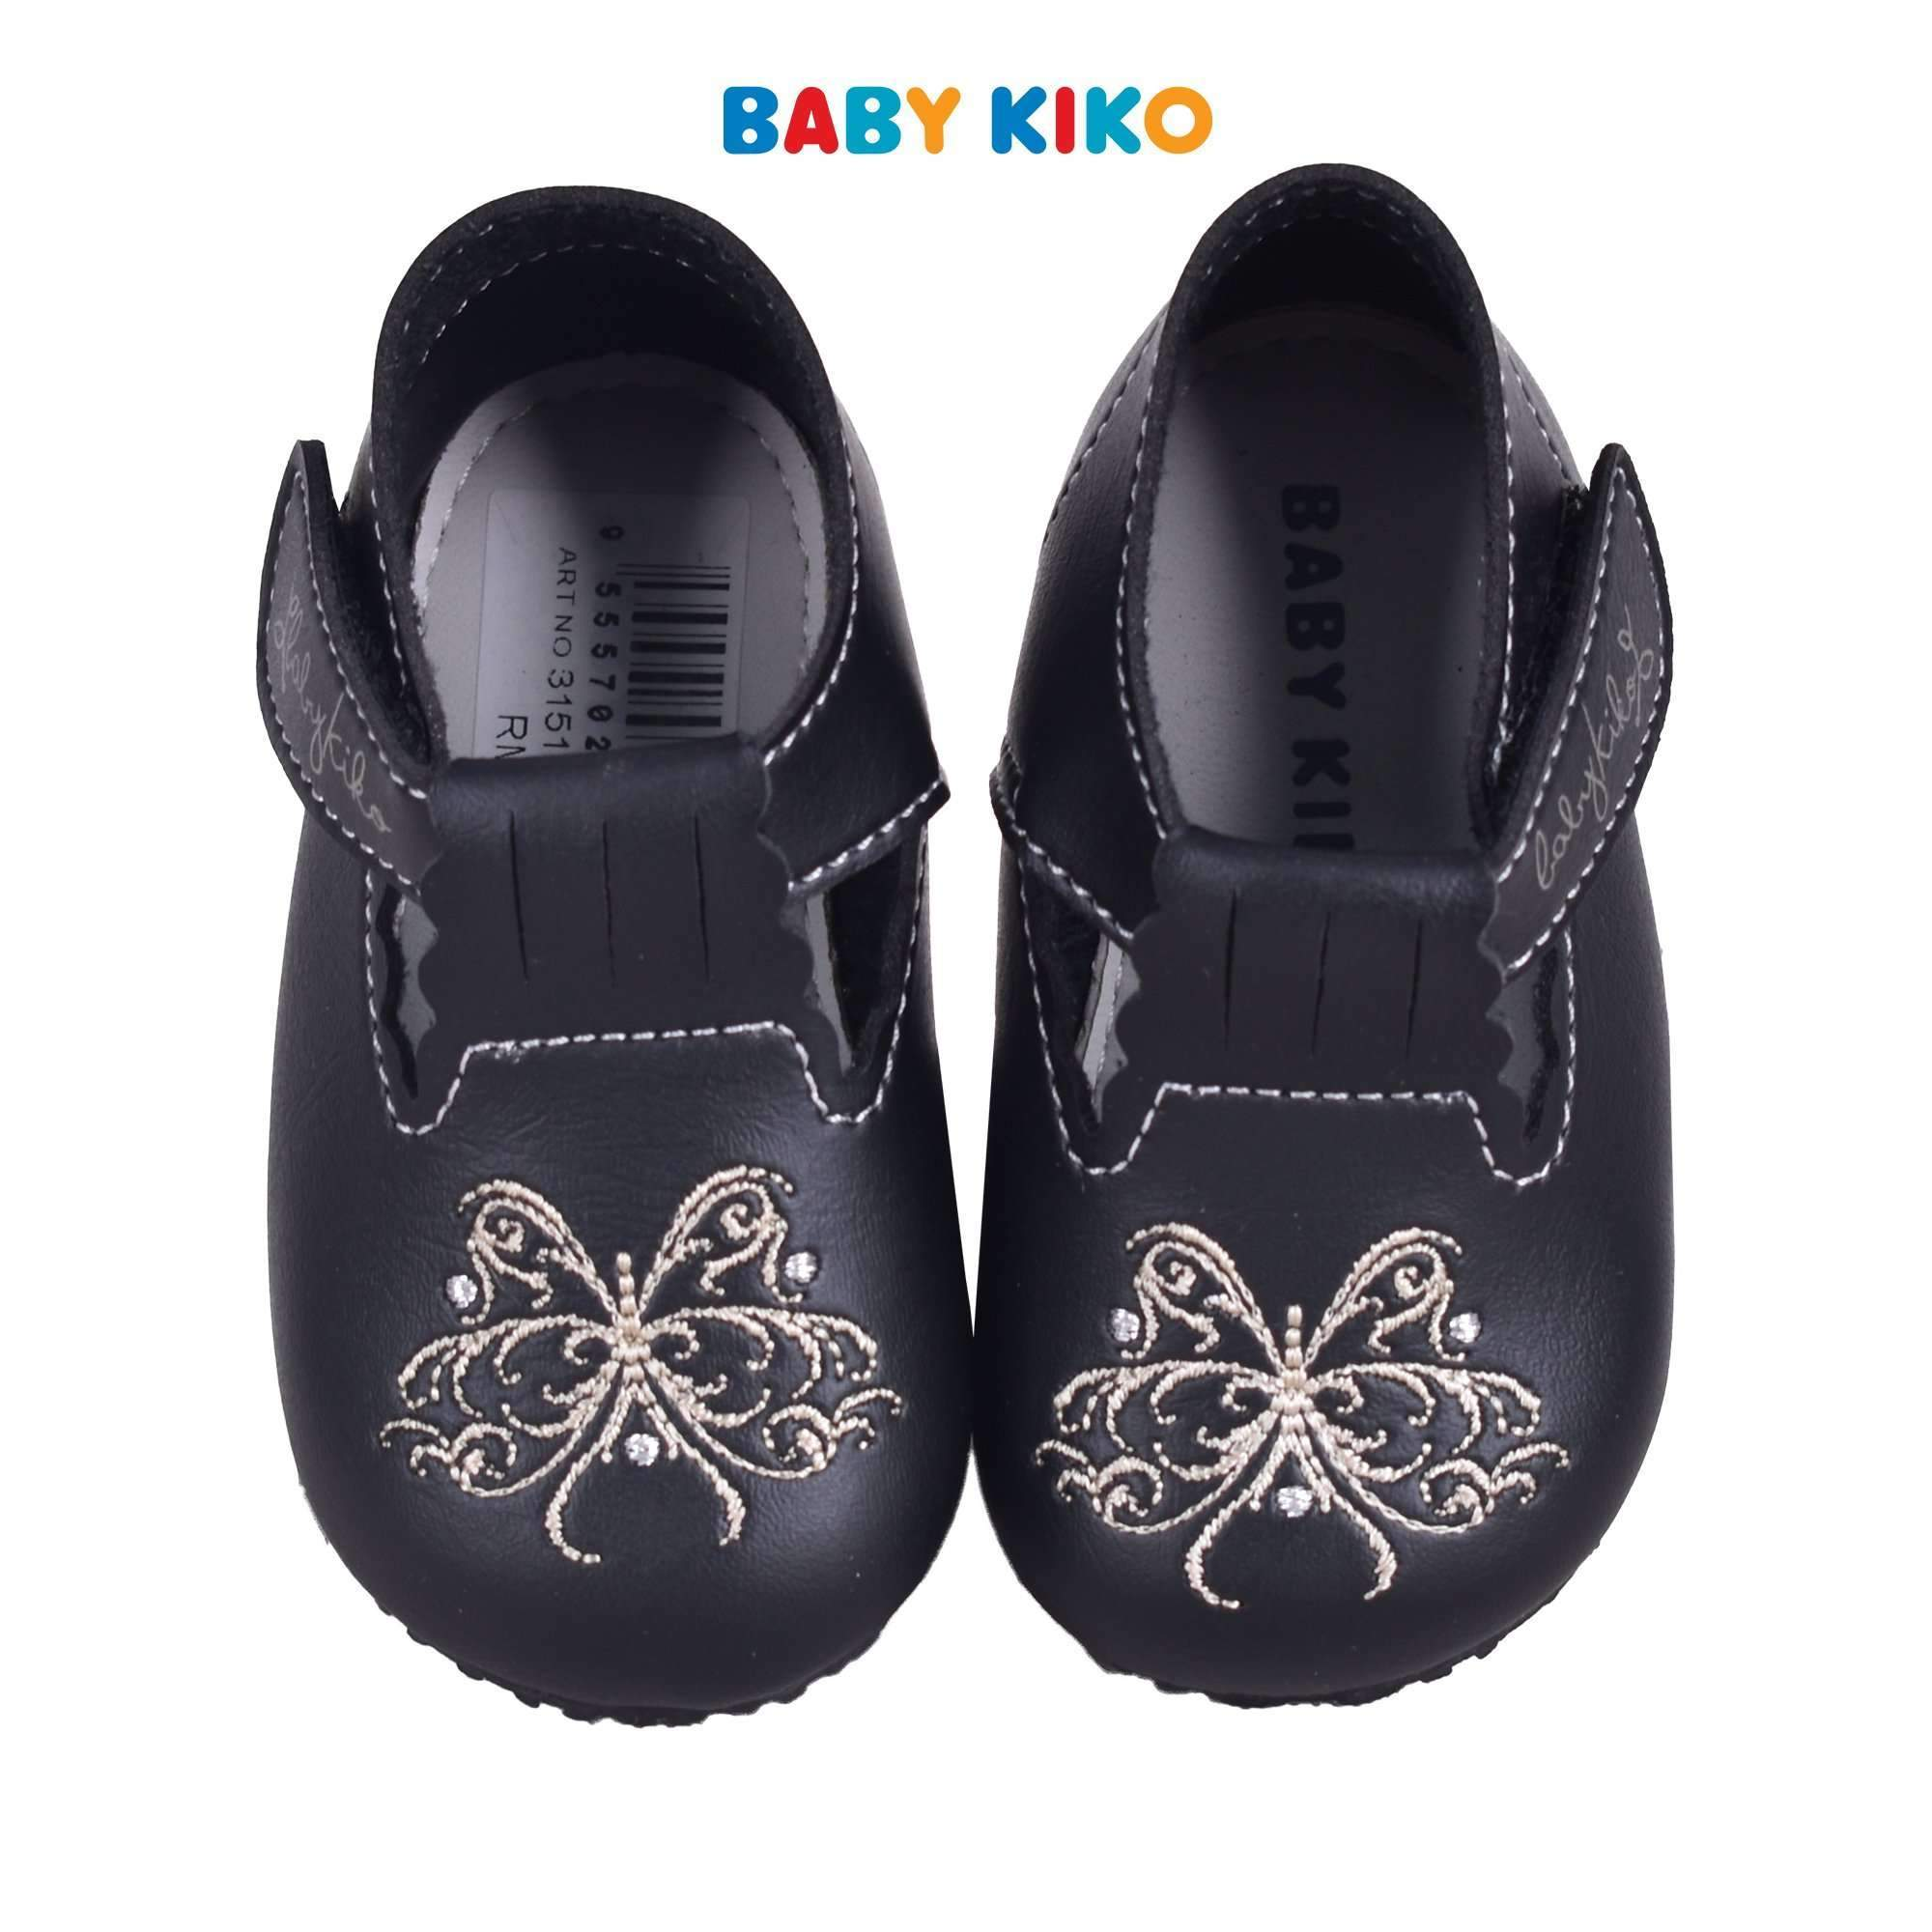 Baby KIKO Toddler Girl PVC Shoes - Black 315129-524 : Buy Baby KIKO online at CMG.MY